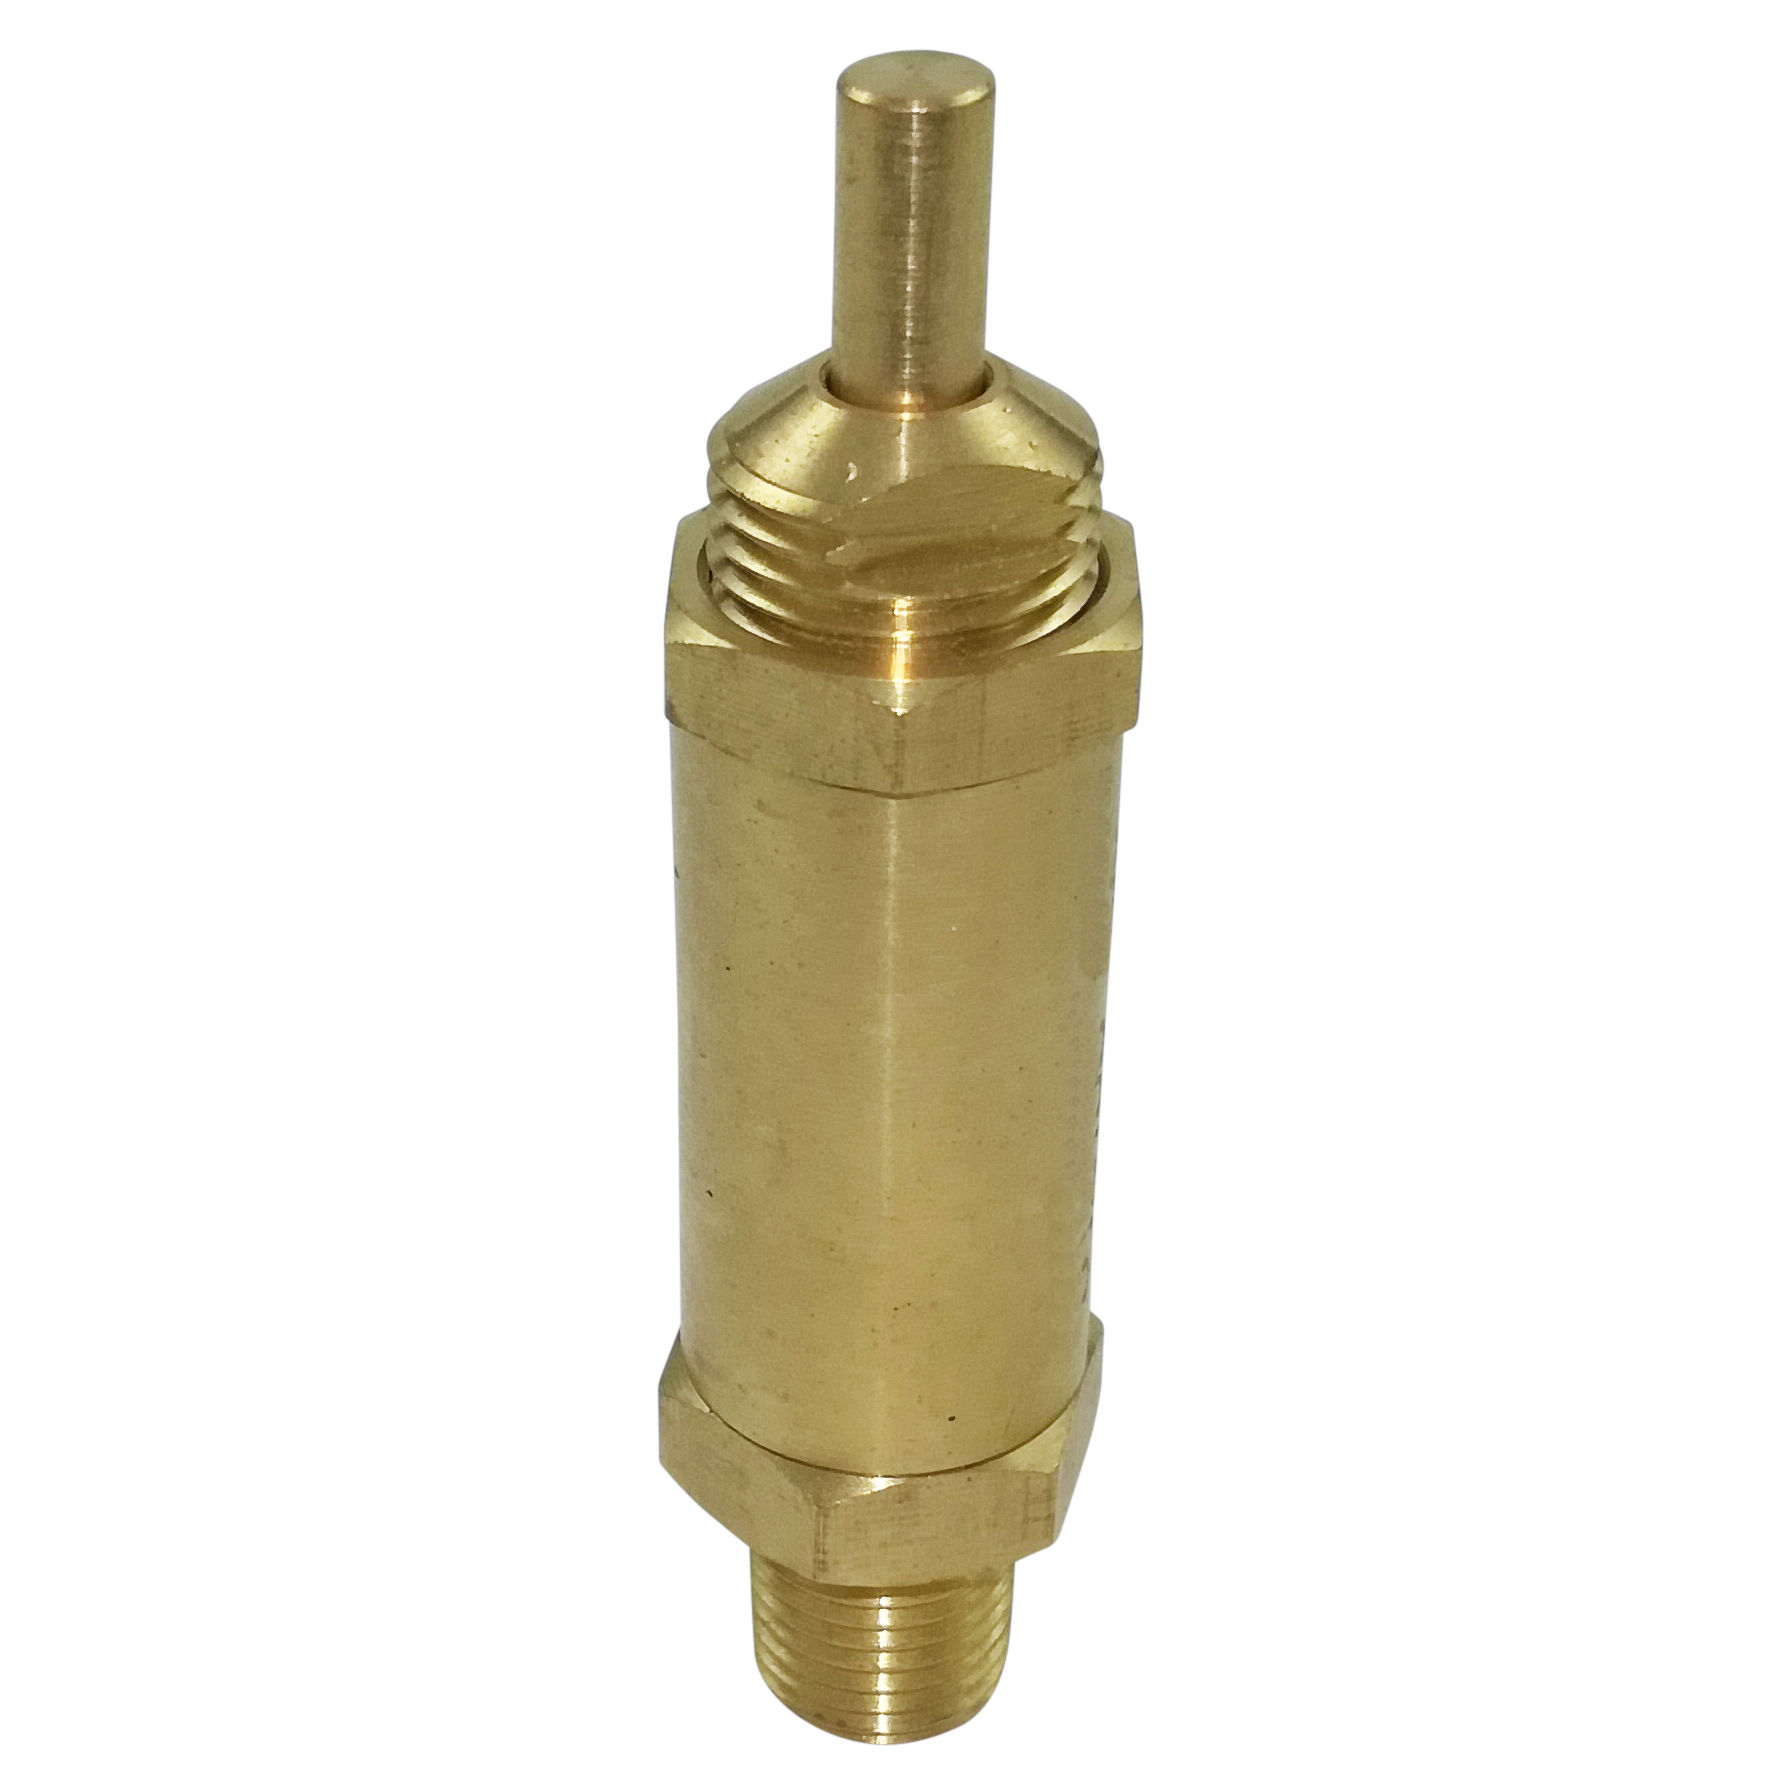 "Adjustable ST-1 Safety Relief Valve - 1/4"" NPT - 150 PSI"